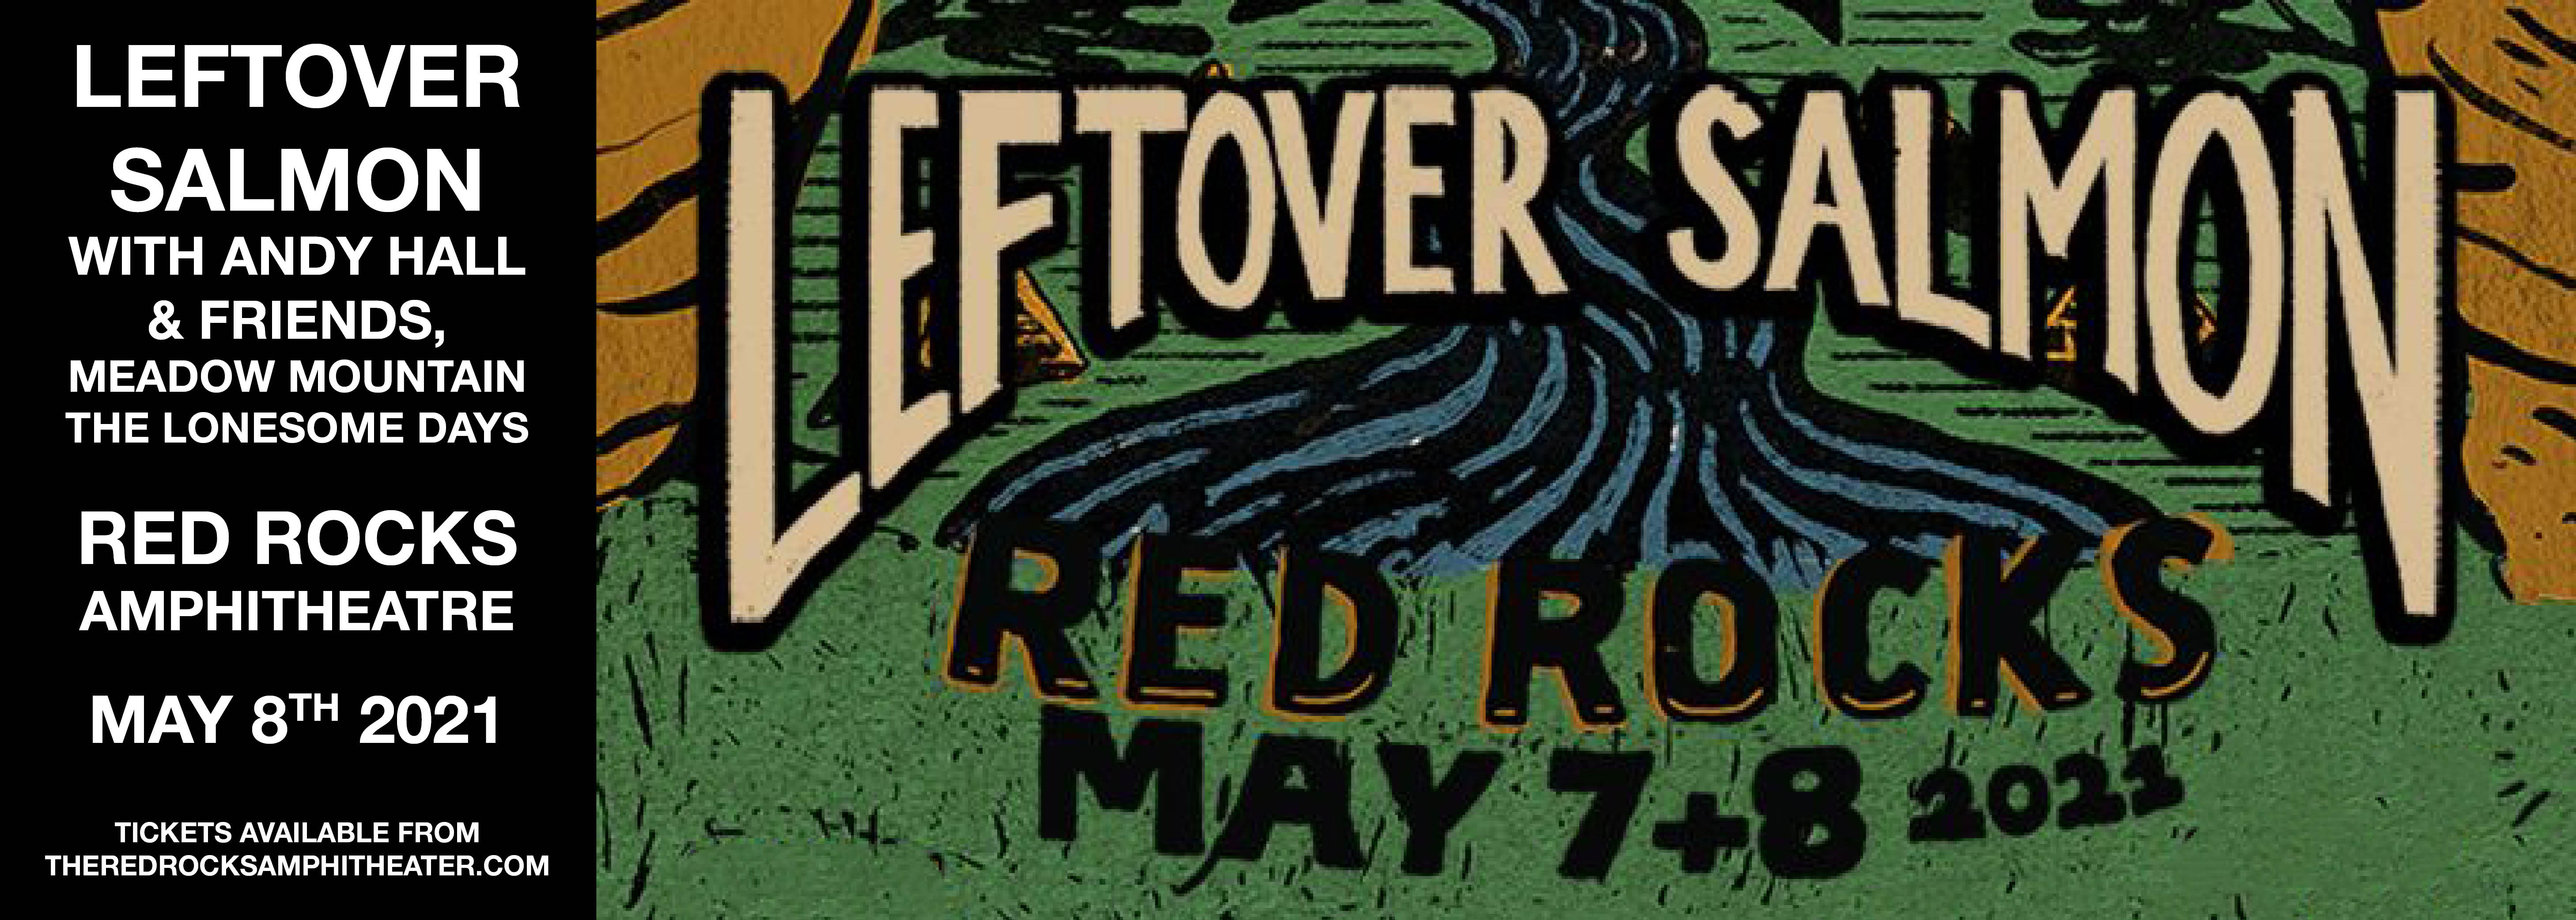 Leftover Salmon at Red Rocks Amphitheater